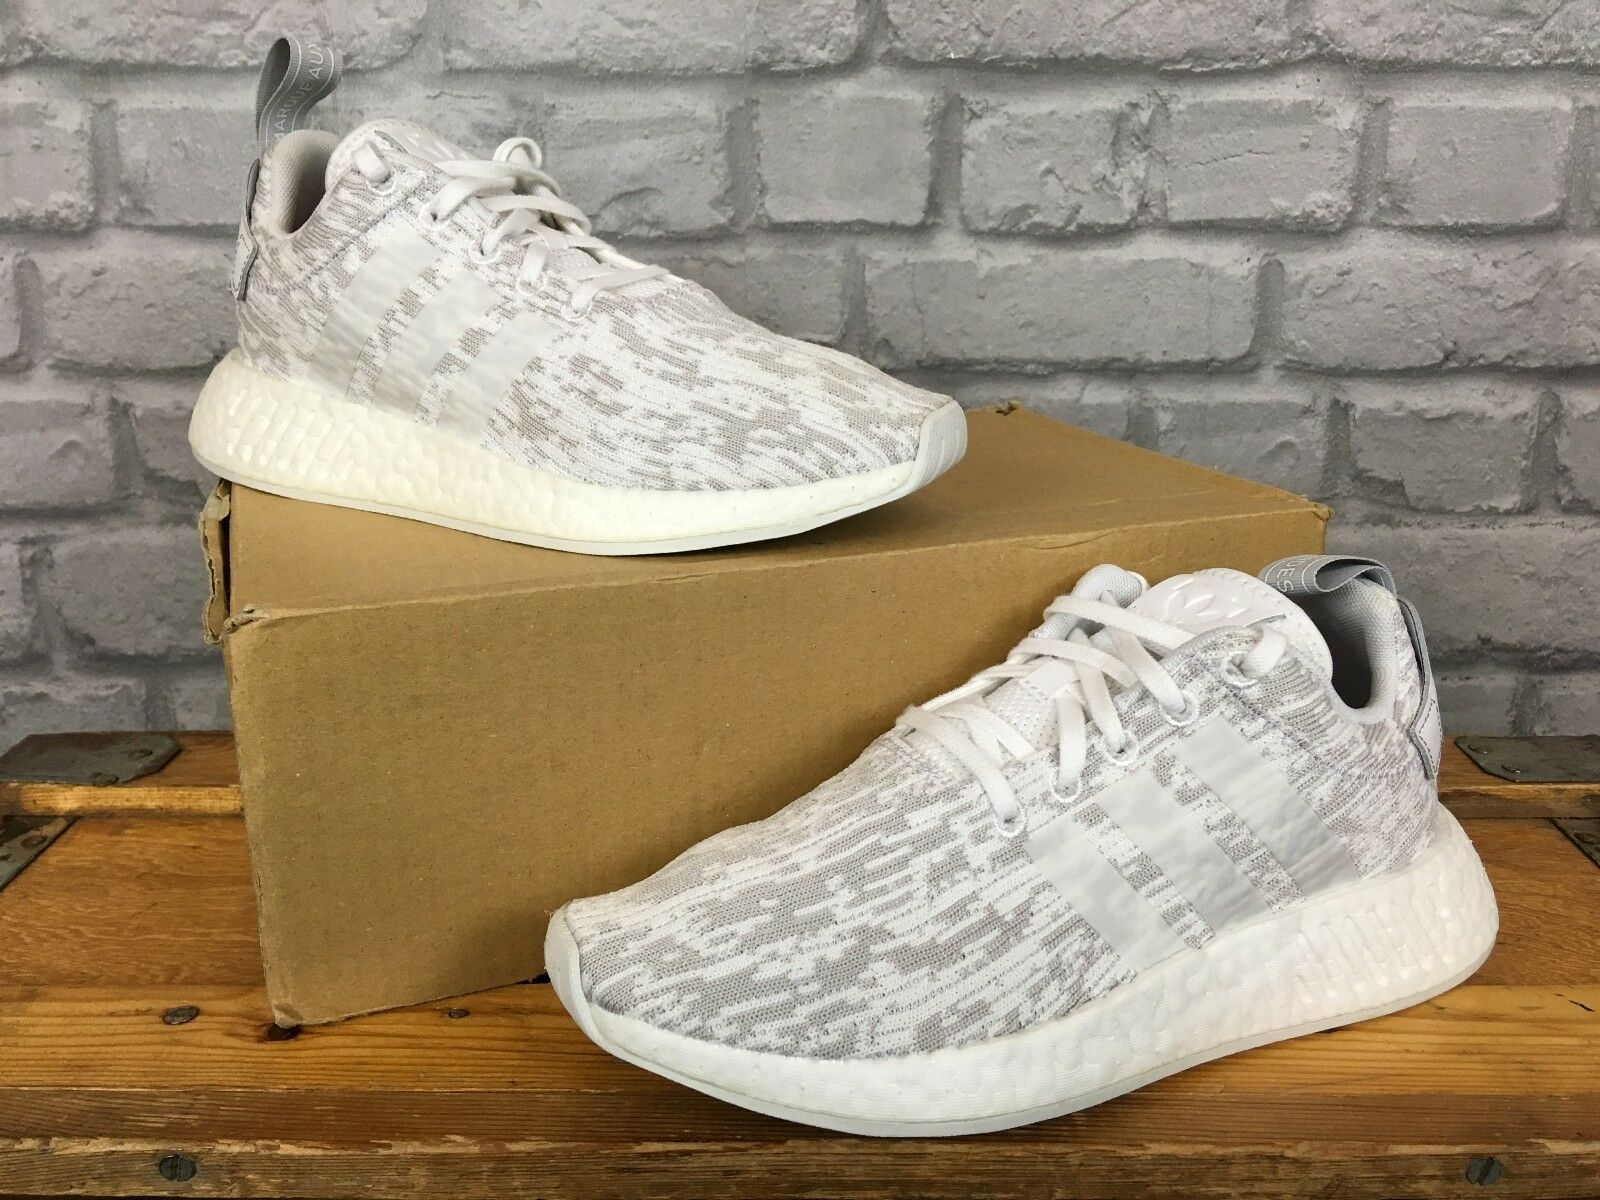 ADIDAS LADIES UK 40 6.5 EU 40 UK Weiß GREY NMD R2 PRIMEKNIT BOOST TRAINERS 2b6adf